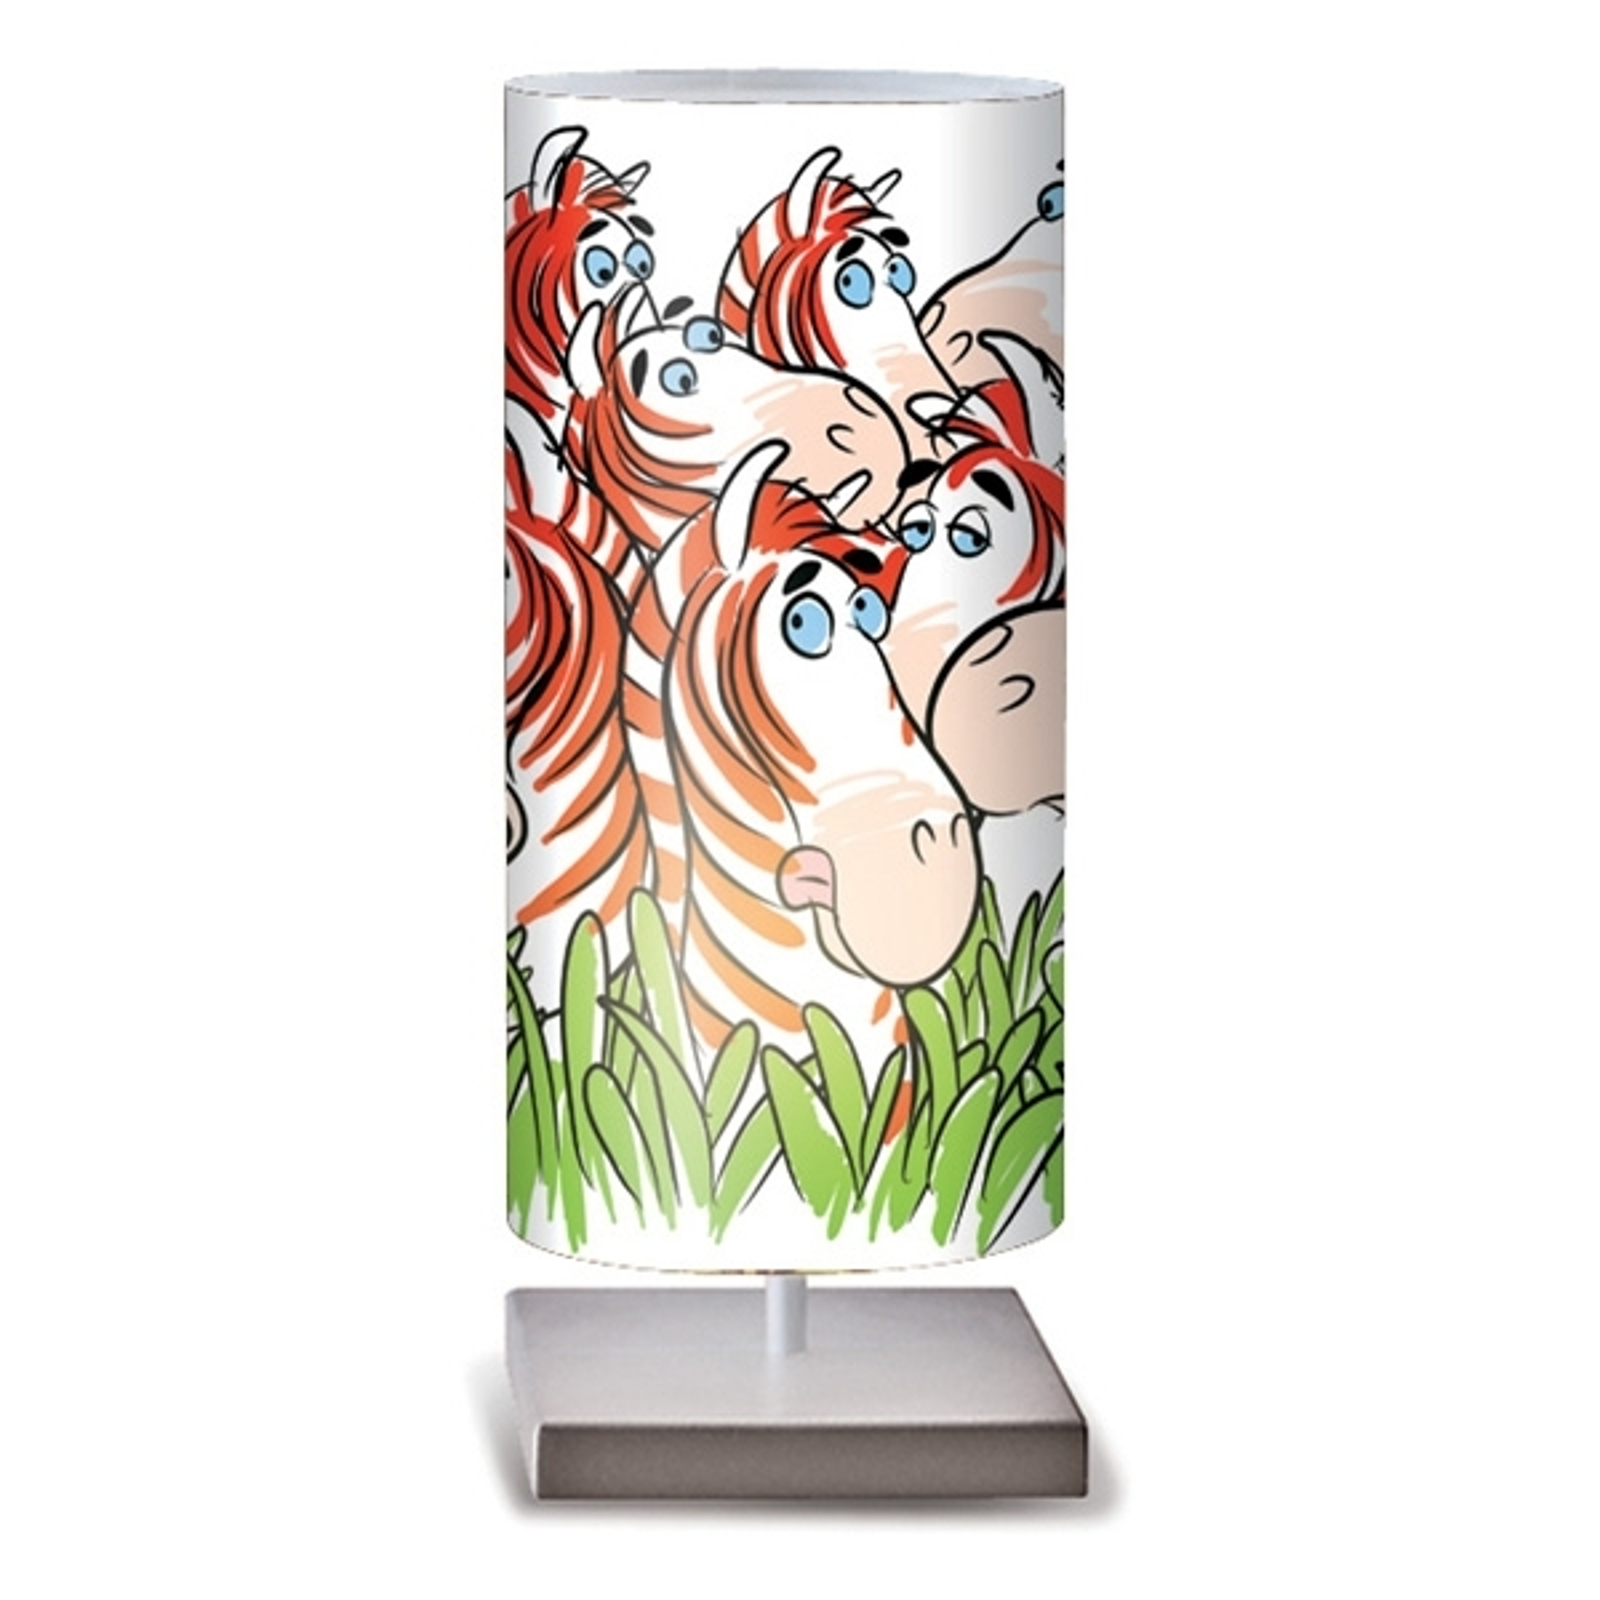 Zebre colourful table lamp for children's rooms_1056059_1